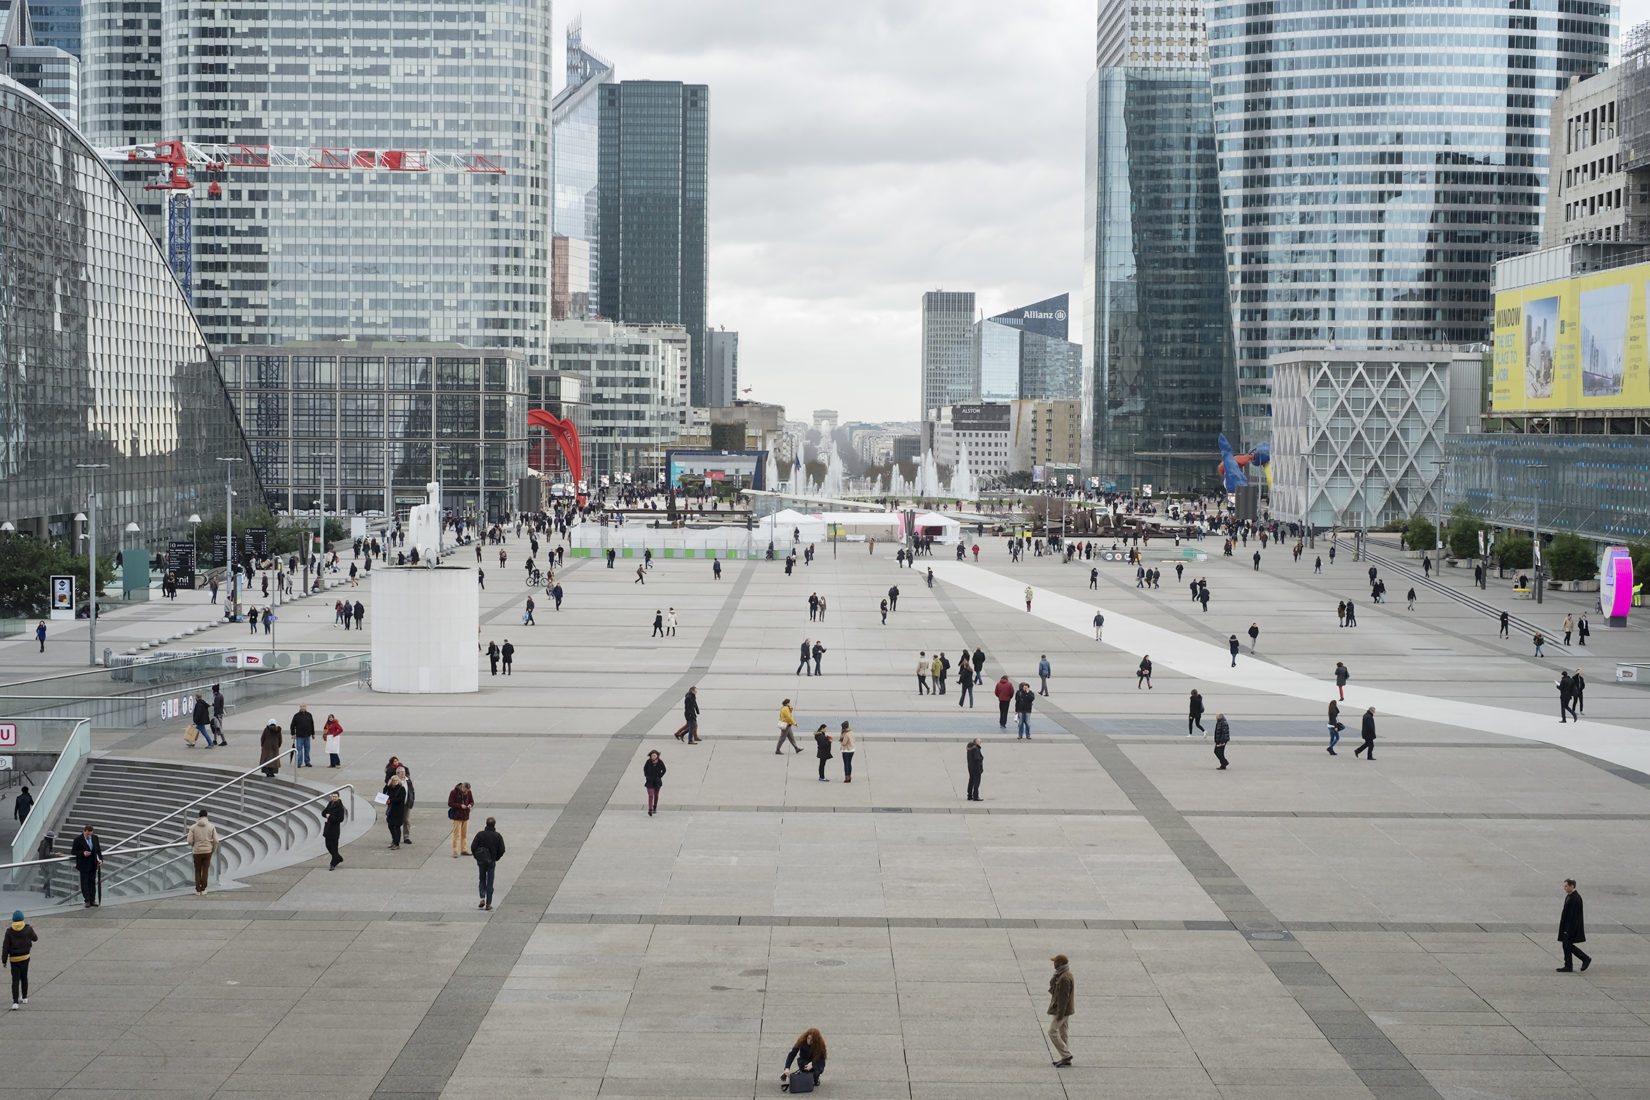 Square, La Défense, 2017